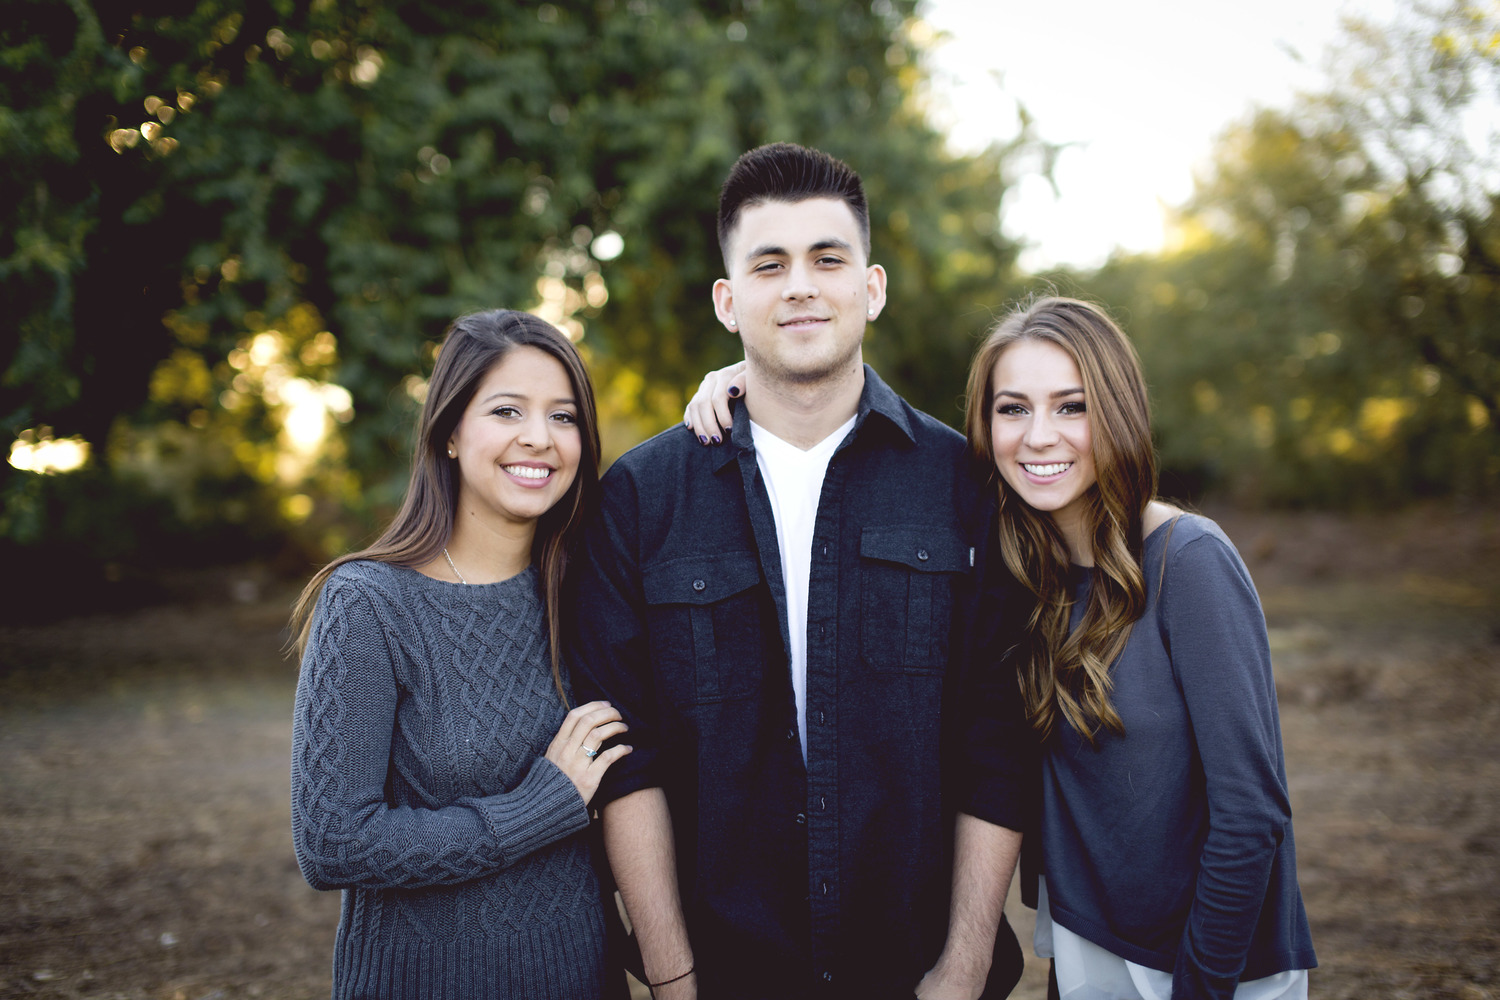 These are our children. Lacey, (left) Colten, (middle) and Alexis (right).